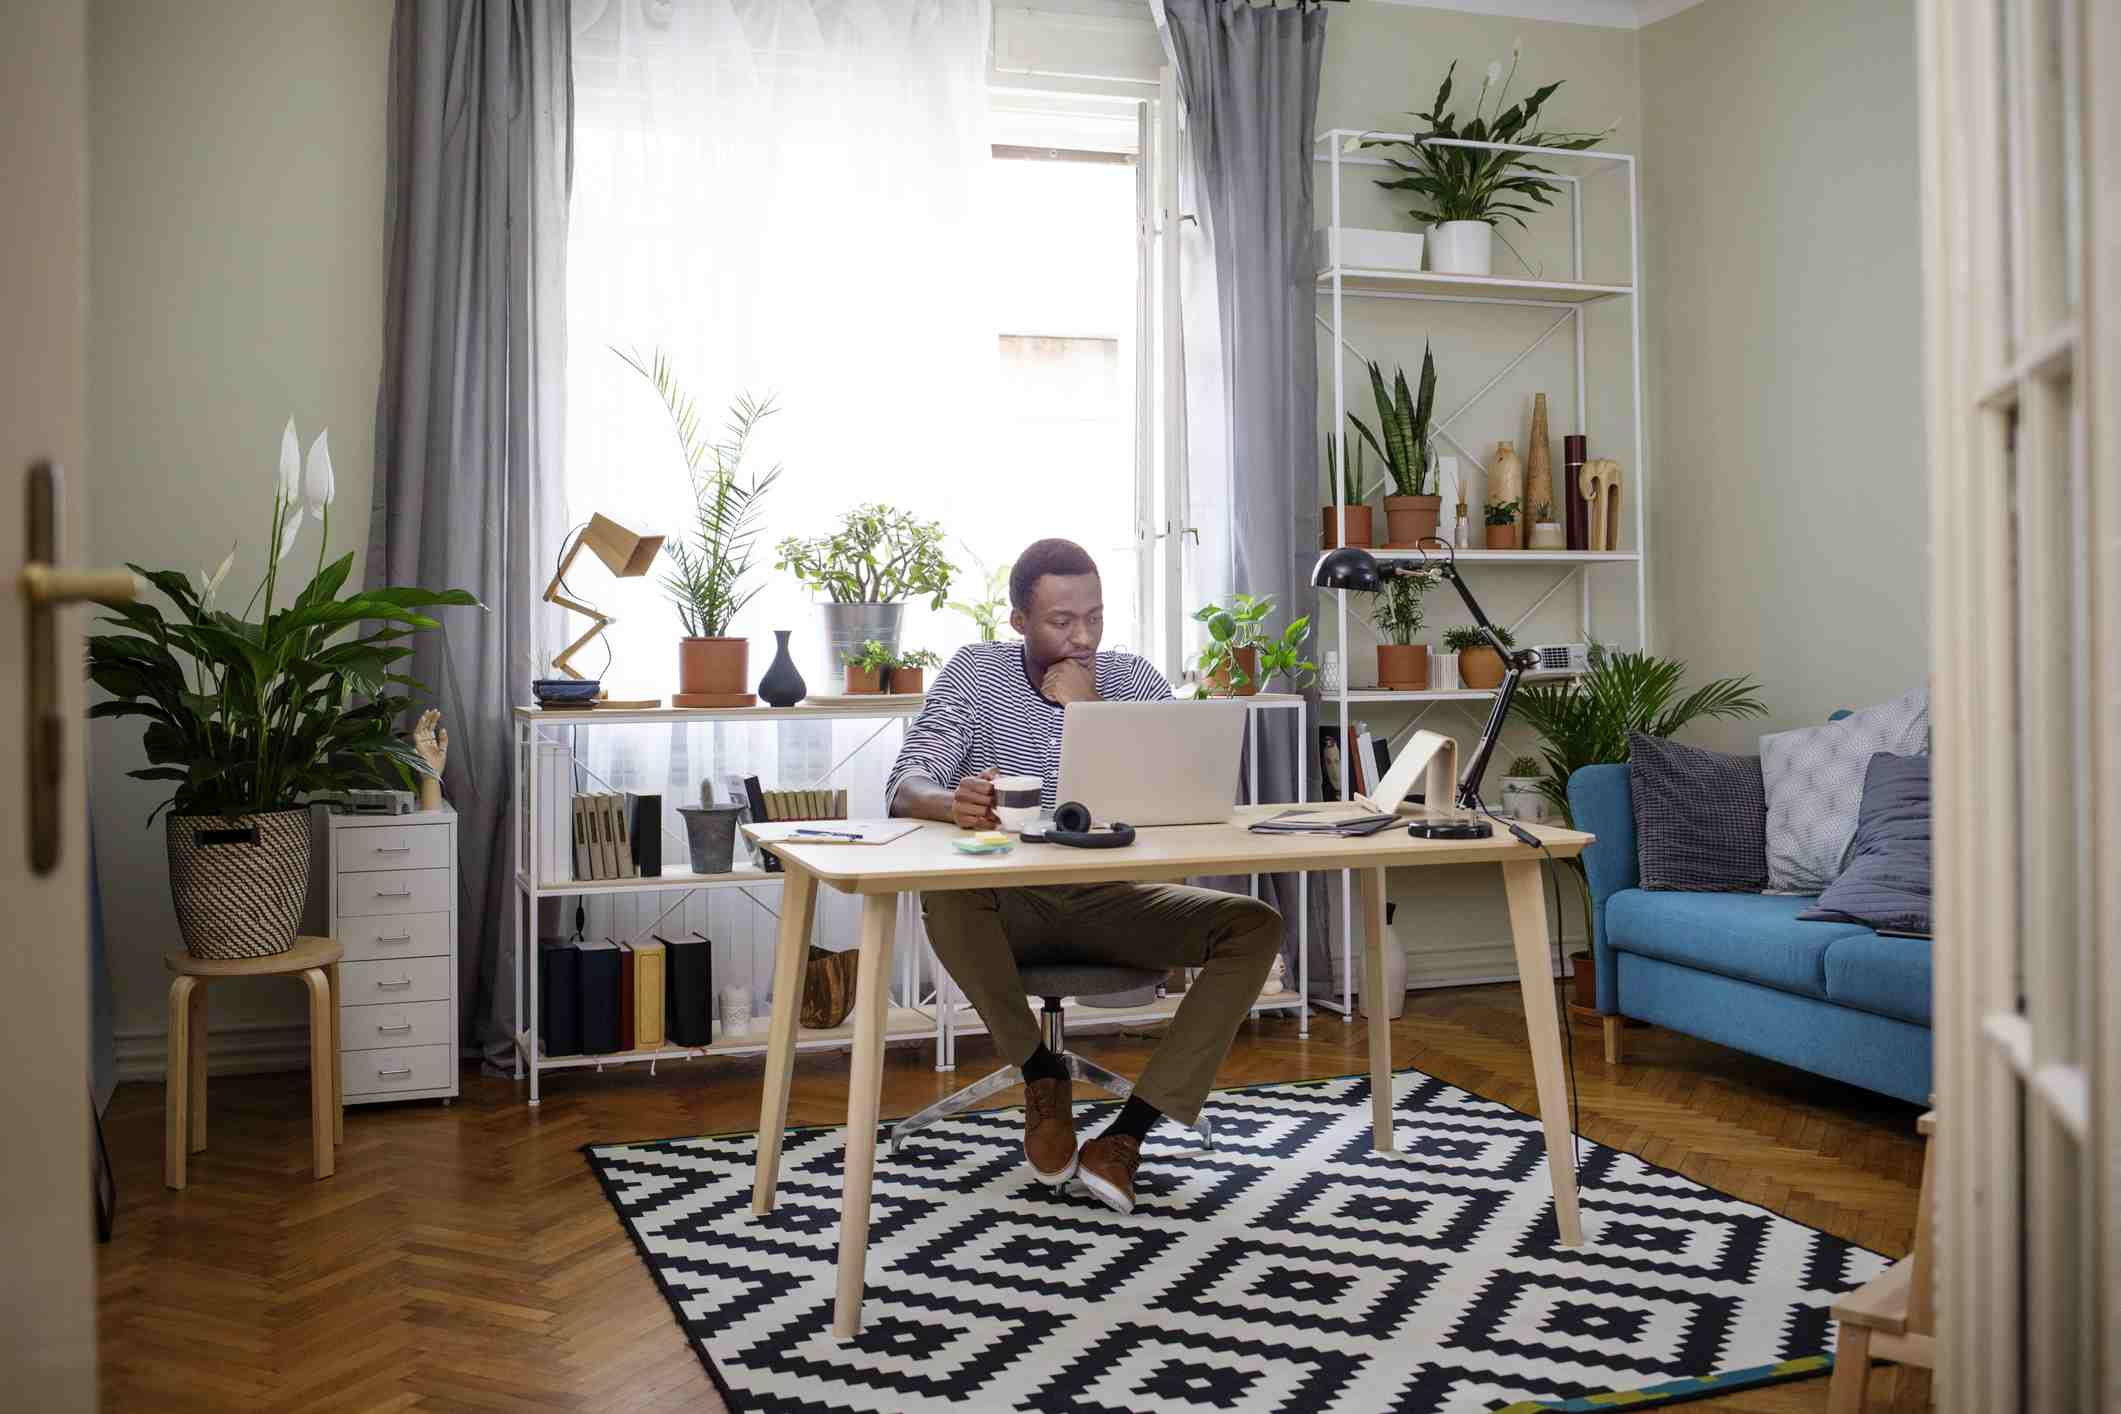 7 Work-at-Home Ground Rules to Boost Your Productivity